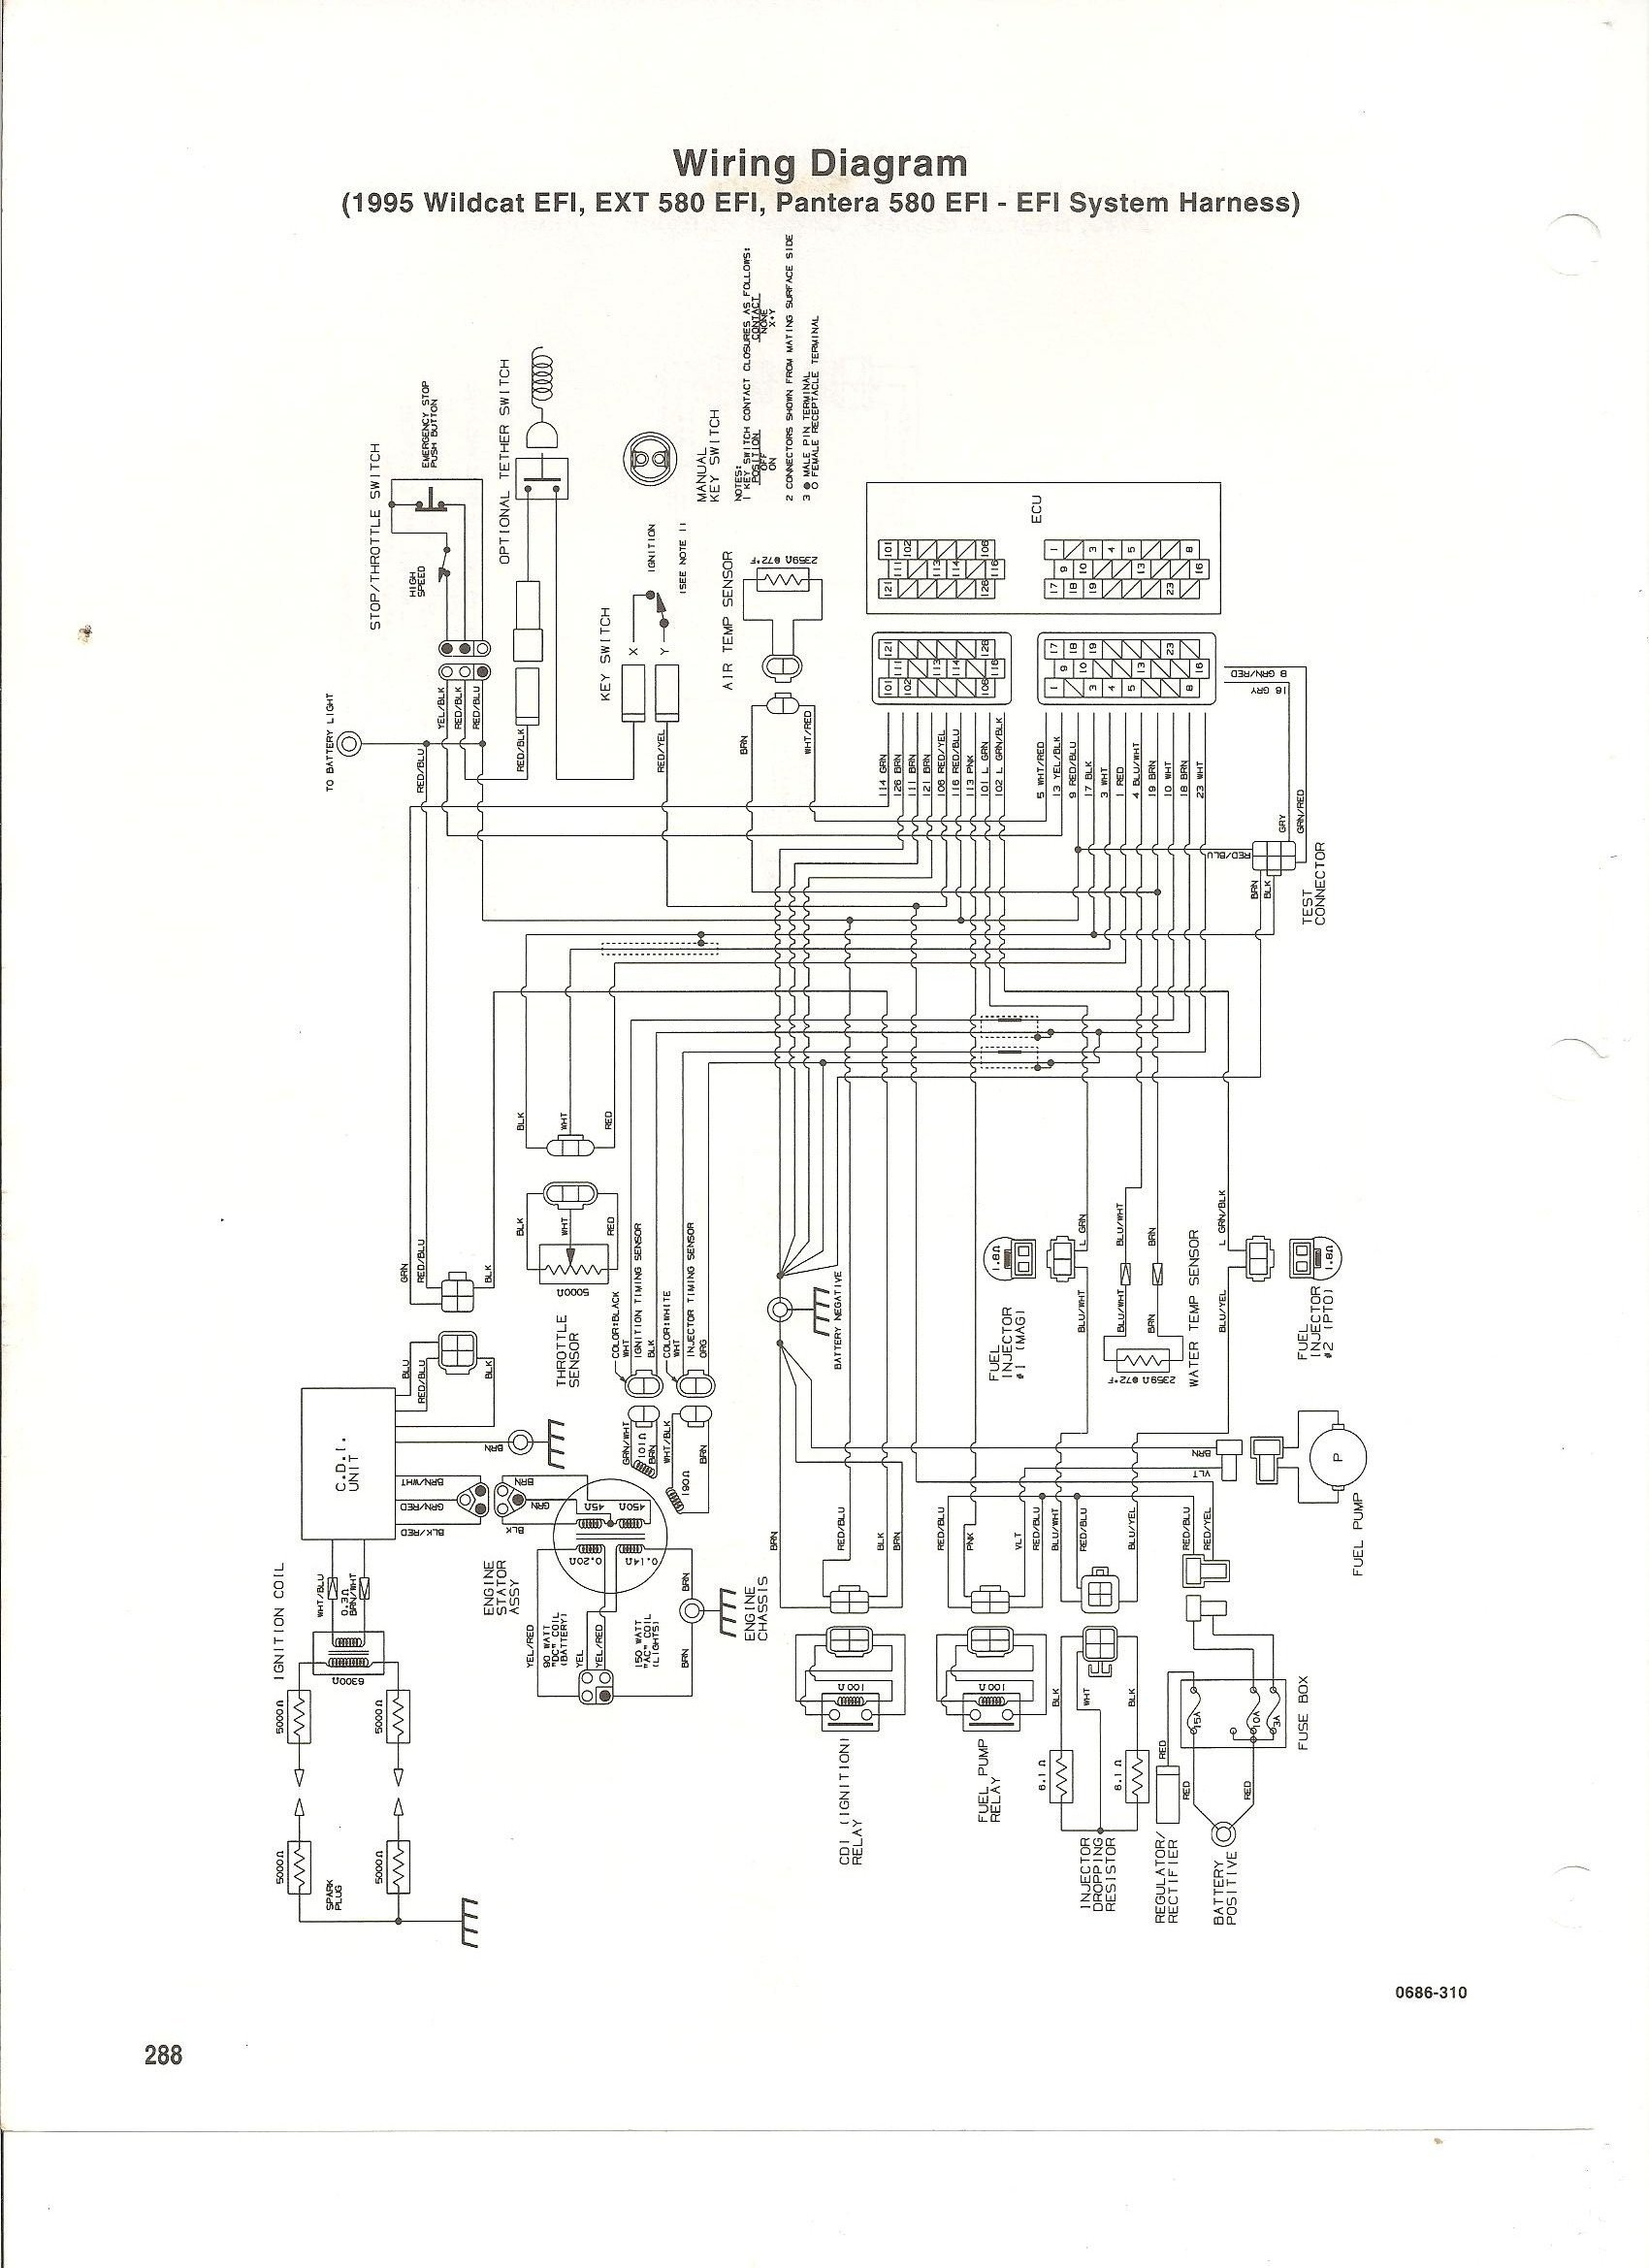 Wiring Diagram For Polaris 400